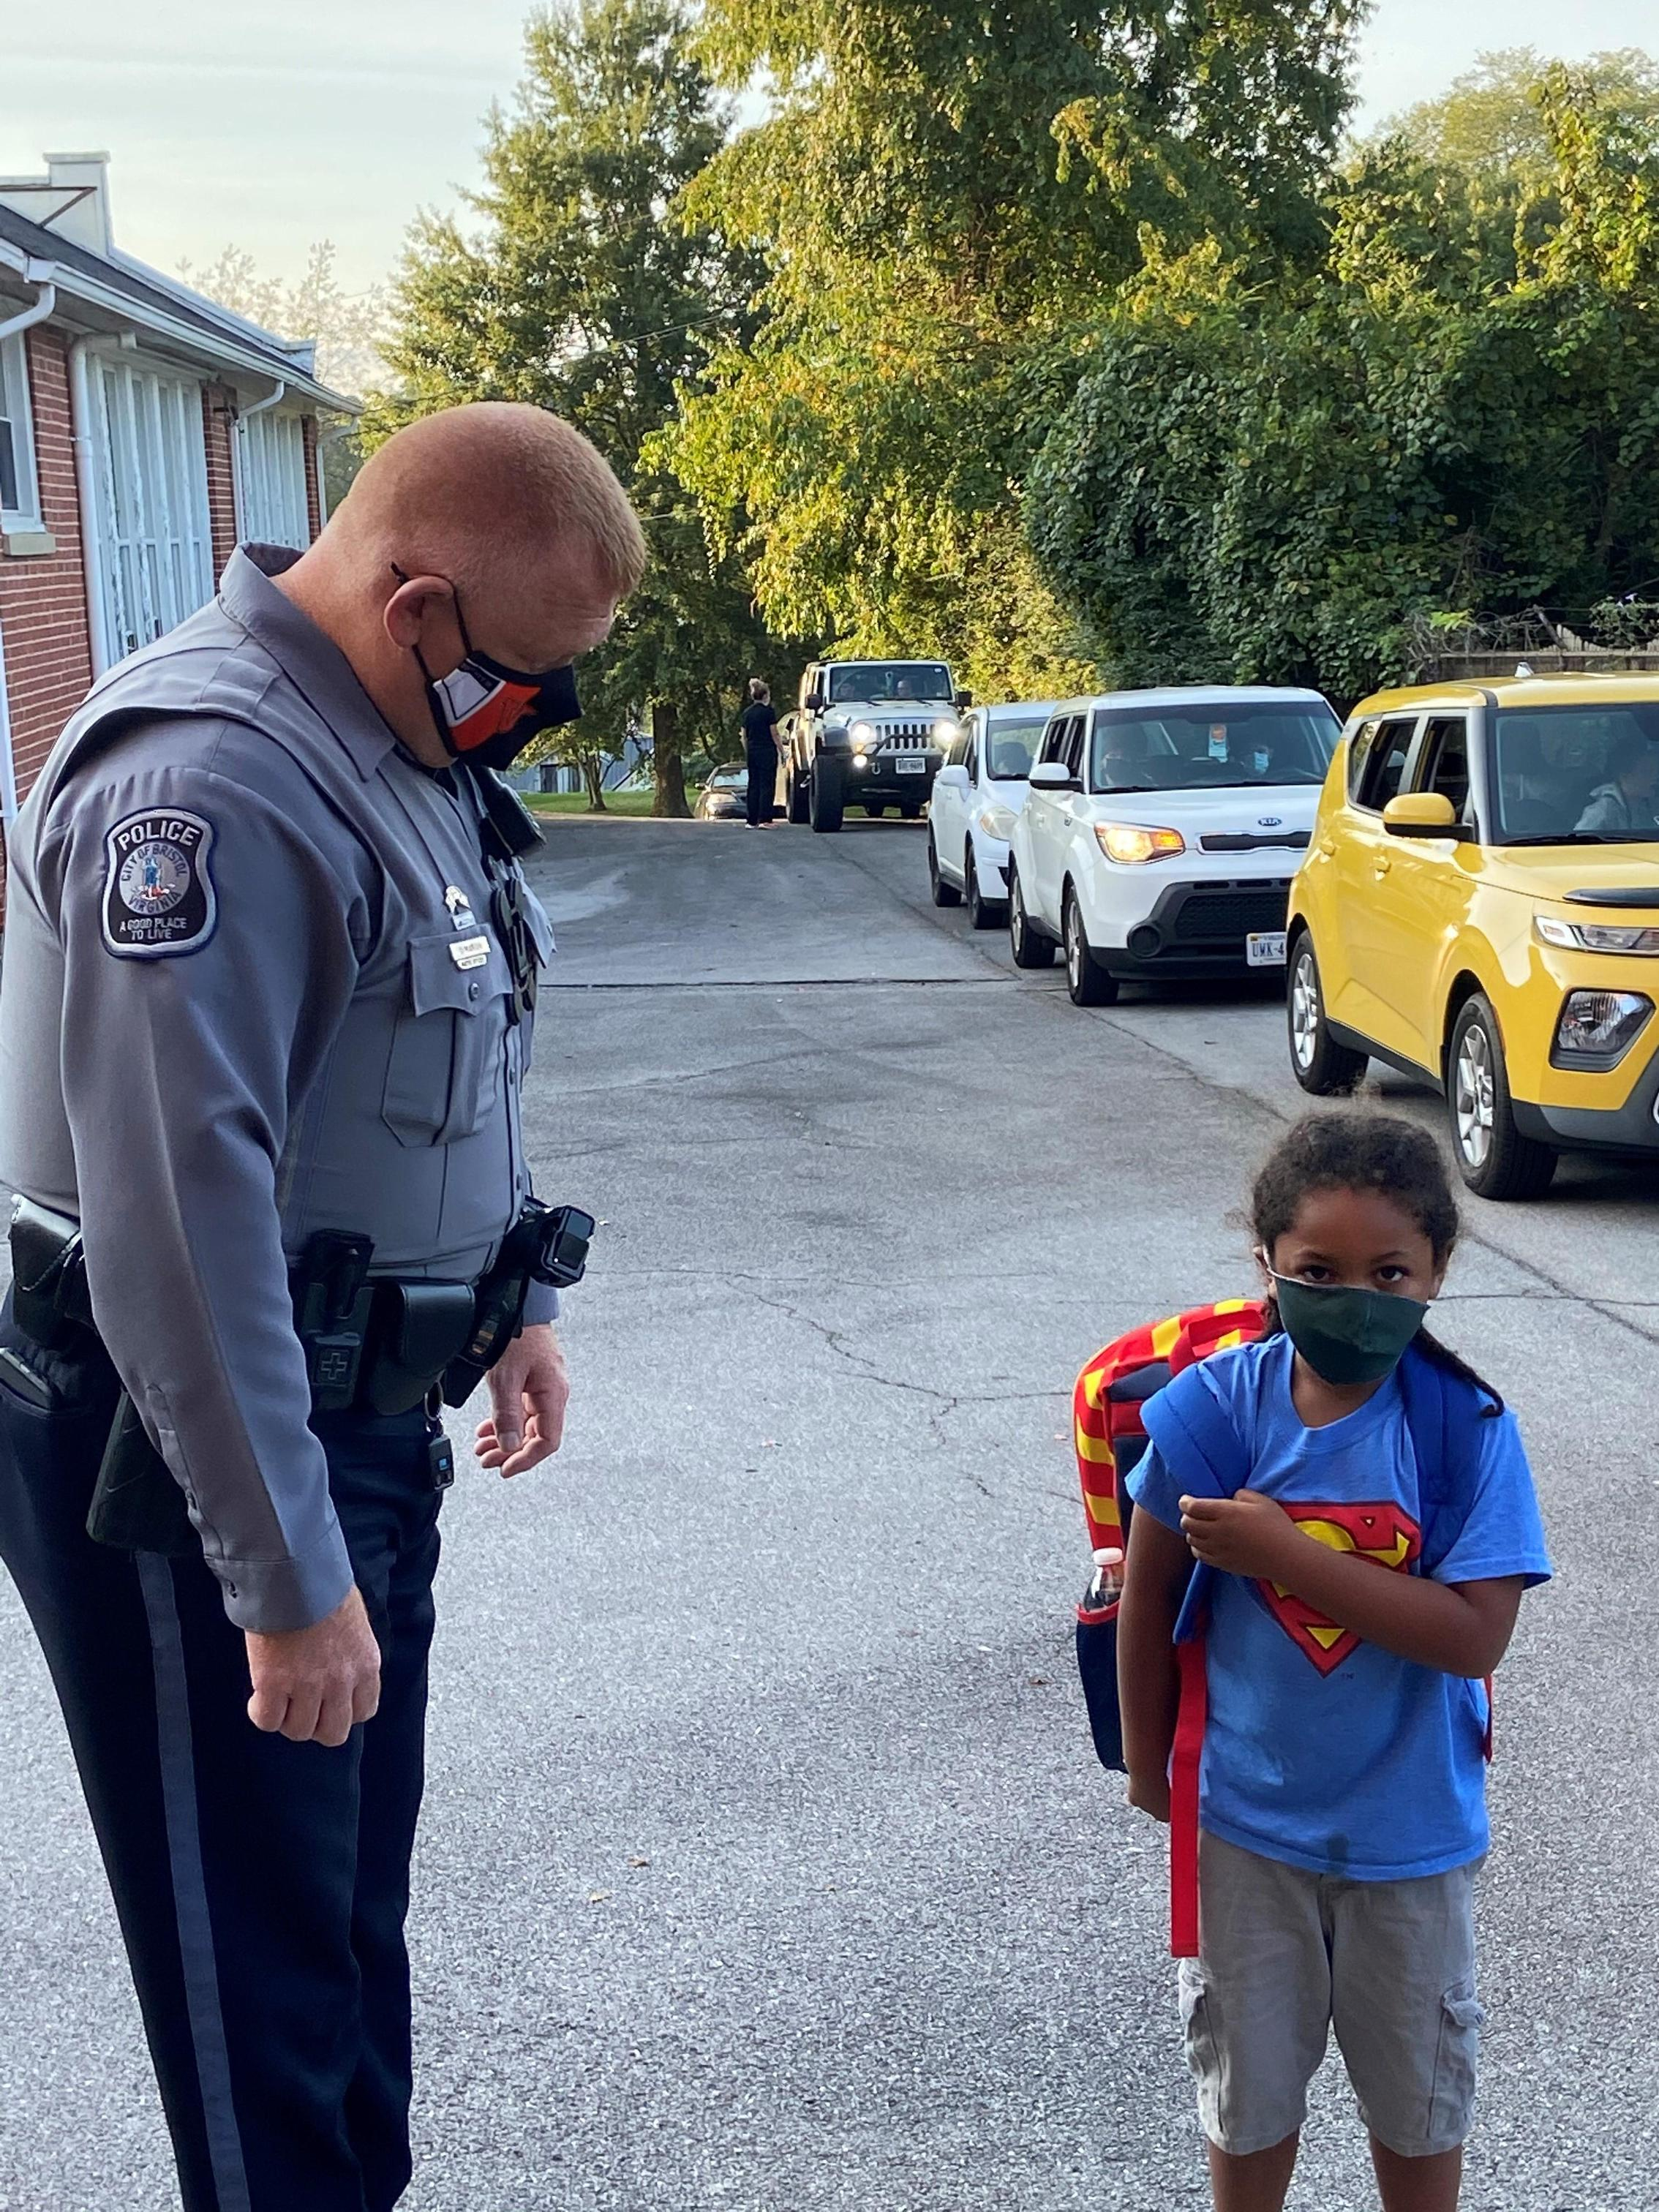 Officer Marion and King